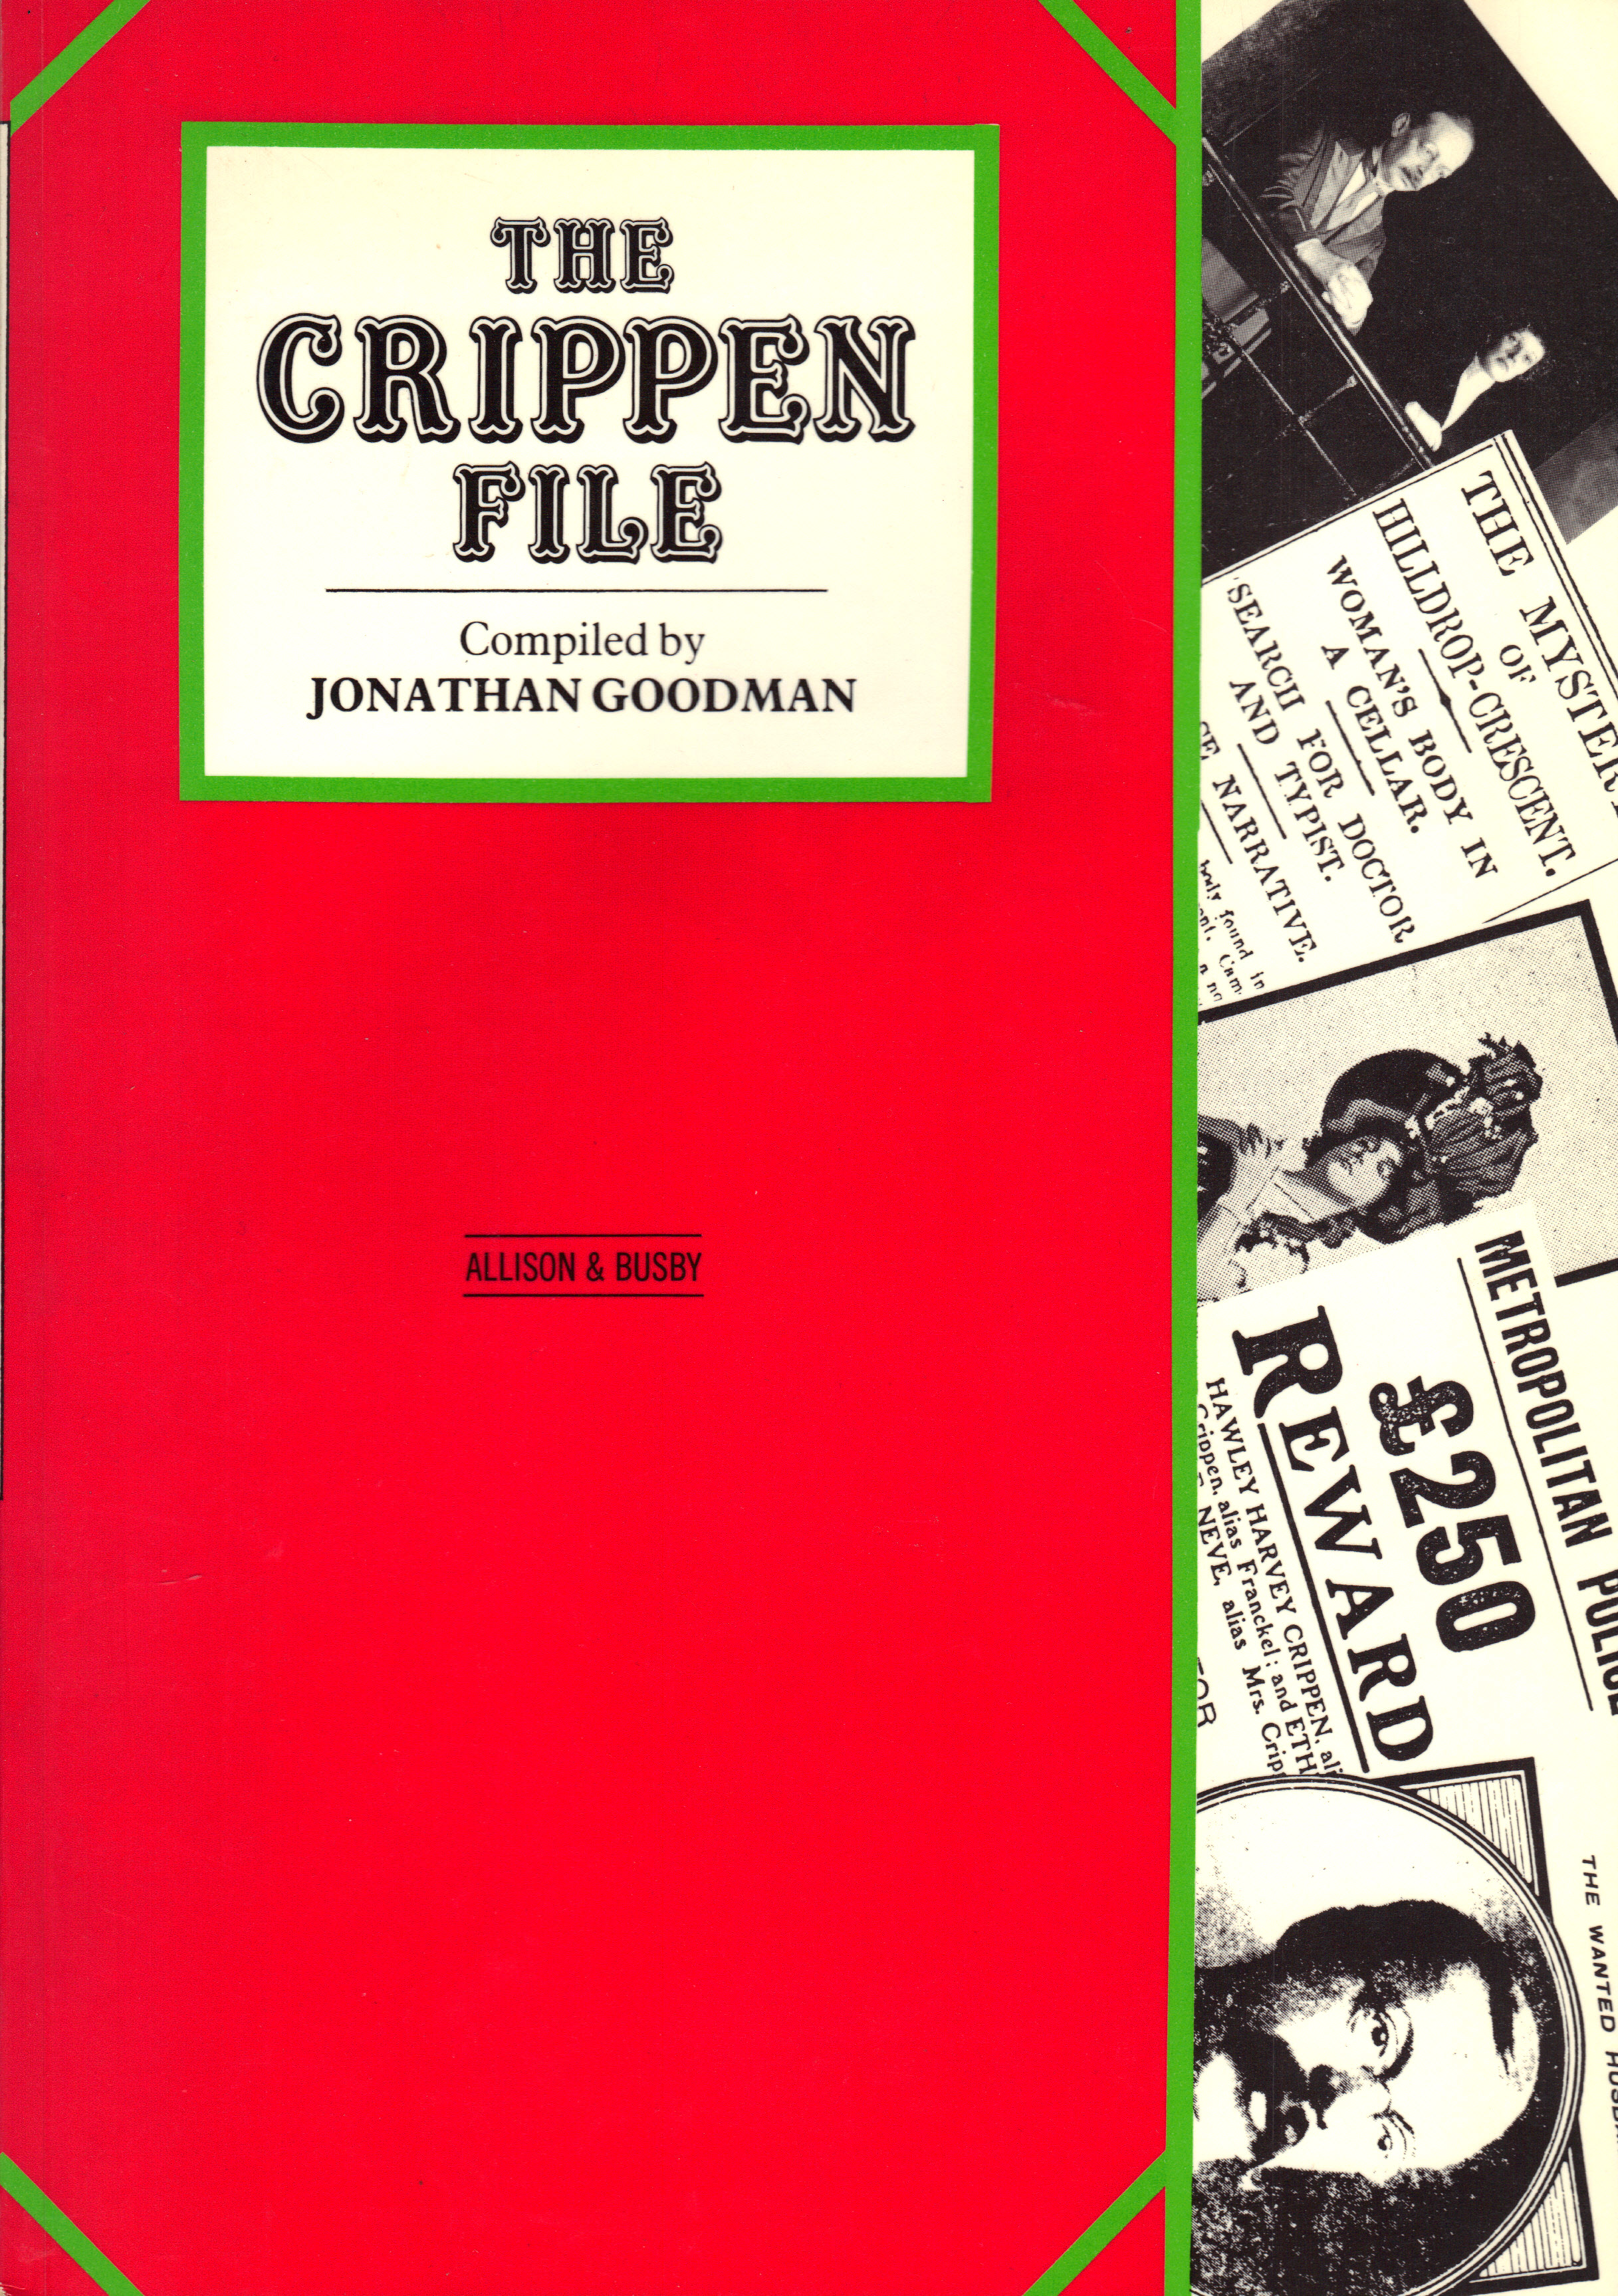 Image for THE CRIPPEN FILE